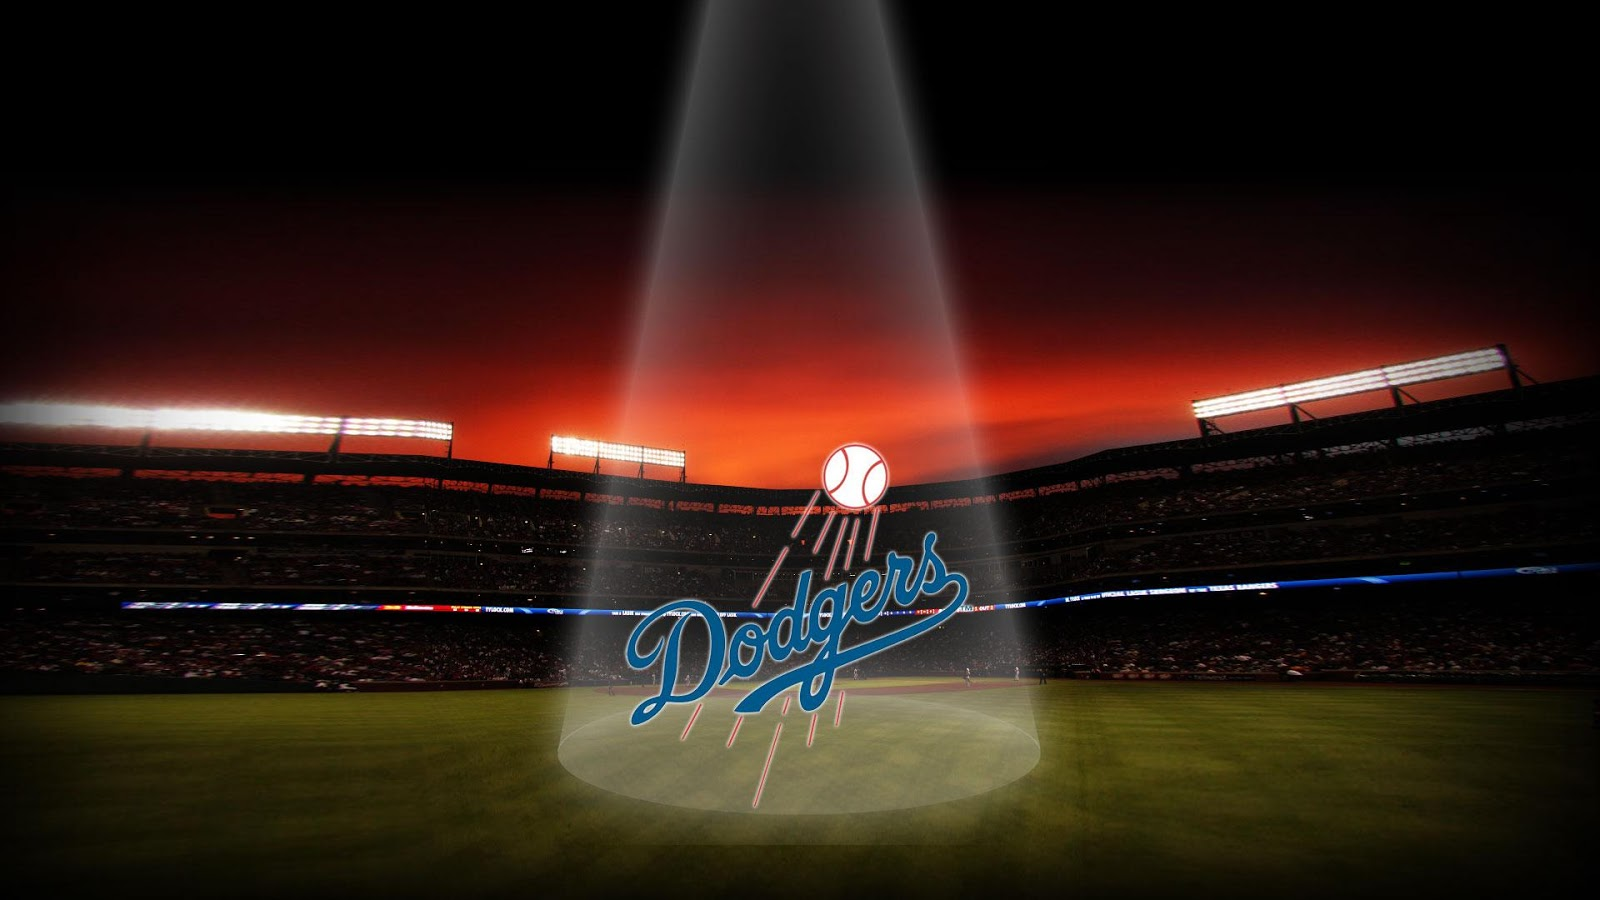 Braves Wallpaper Iphone Excellent Los Angeles Dodgers Wallpaper Full Hd Pictures